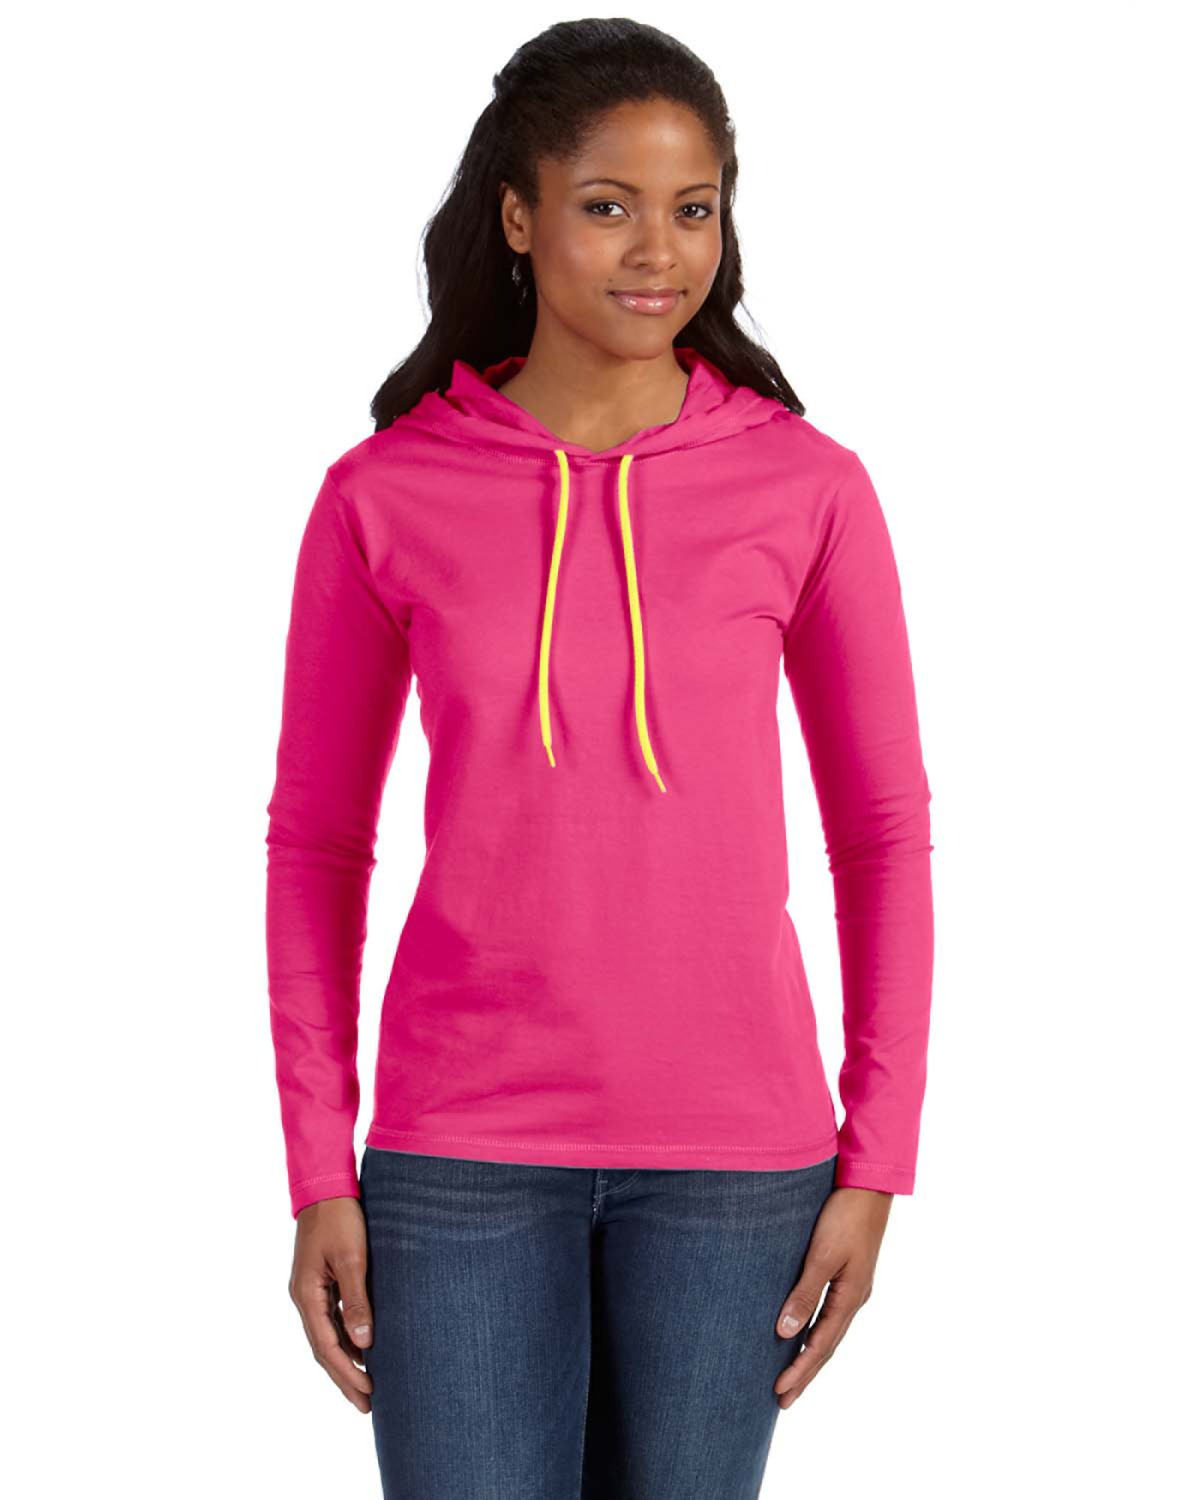 df7d5fe7f Anvil 887L Hot Pink/Neo Yel Ladies' Lightweight Long-Sleeve Hooded T-Shirt